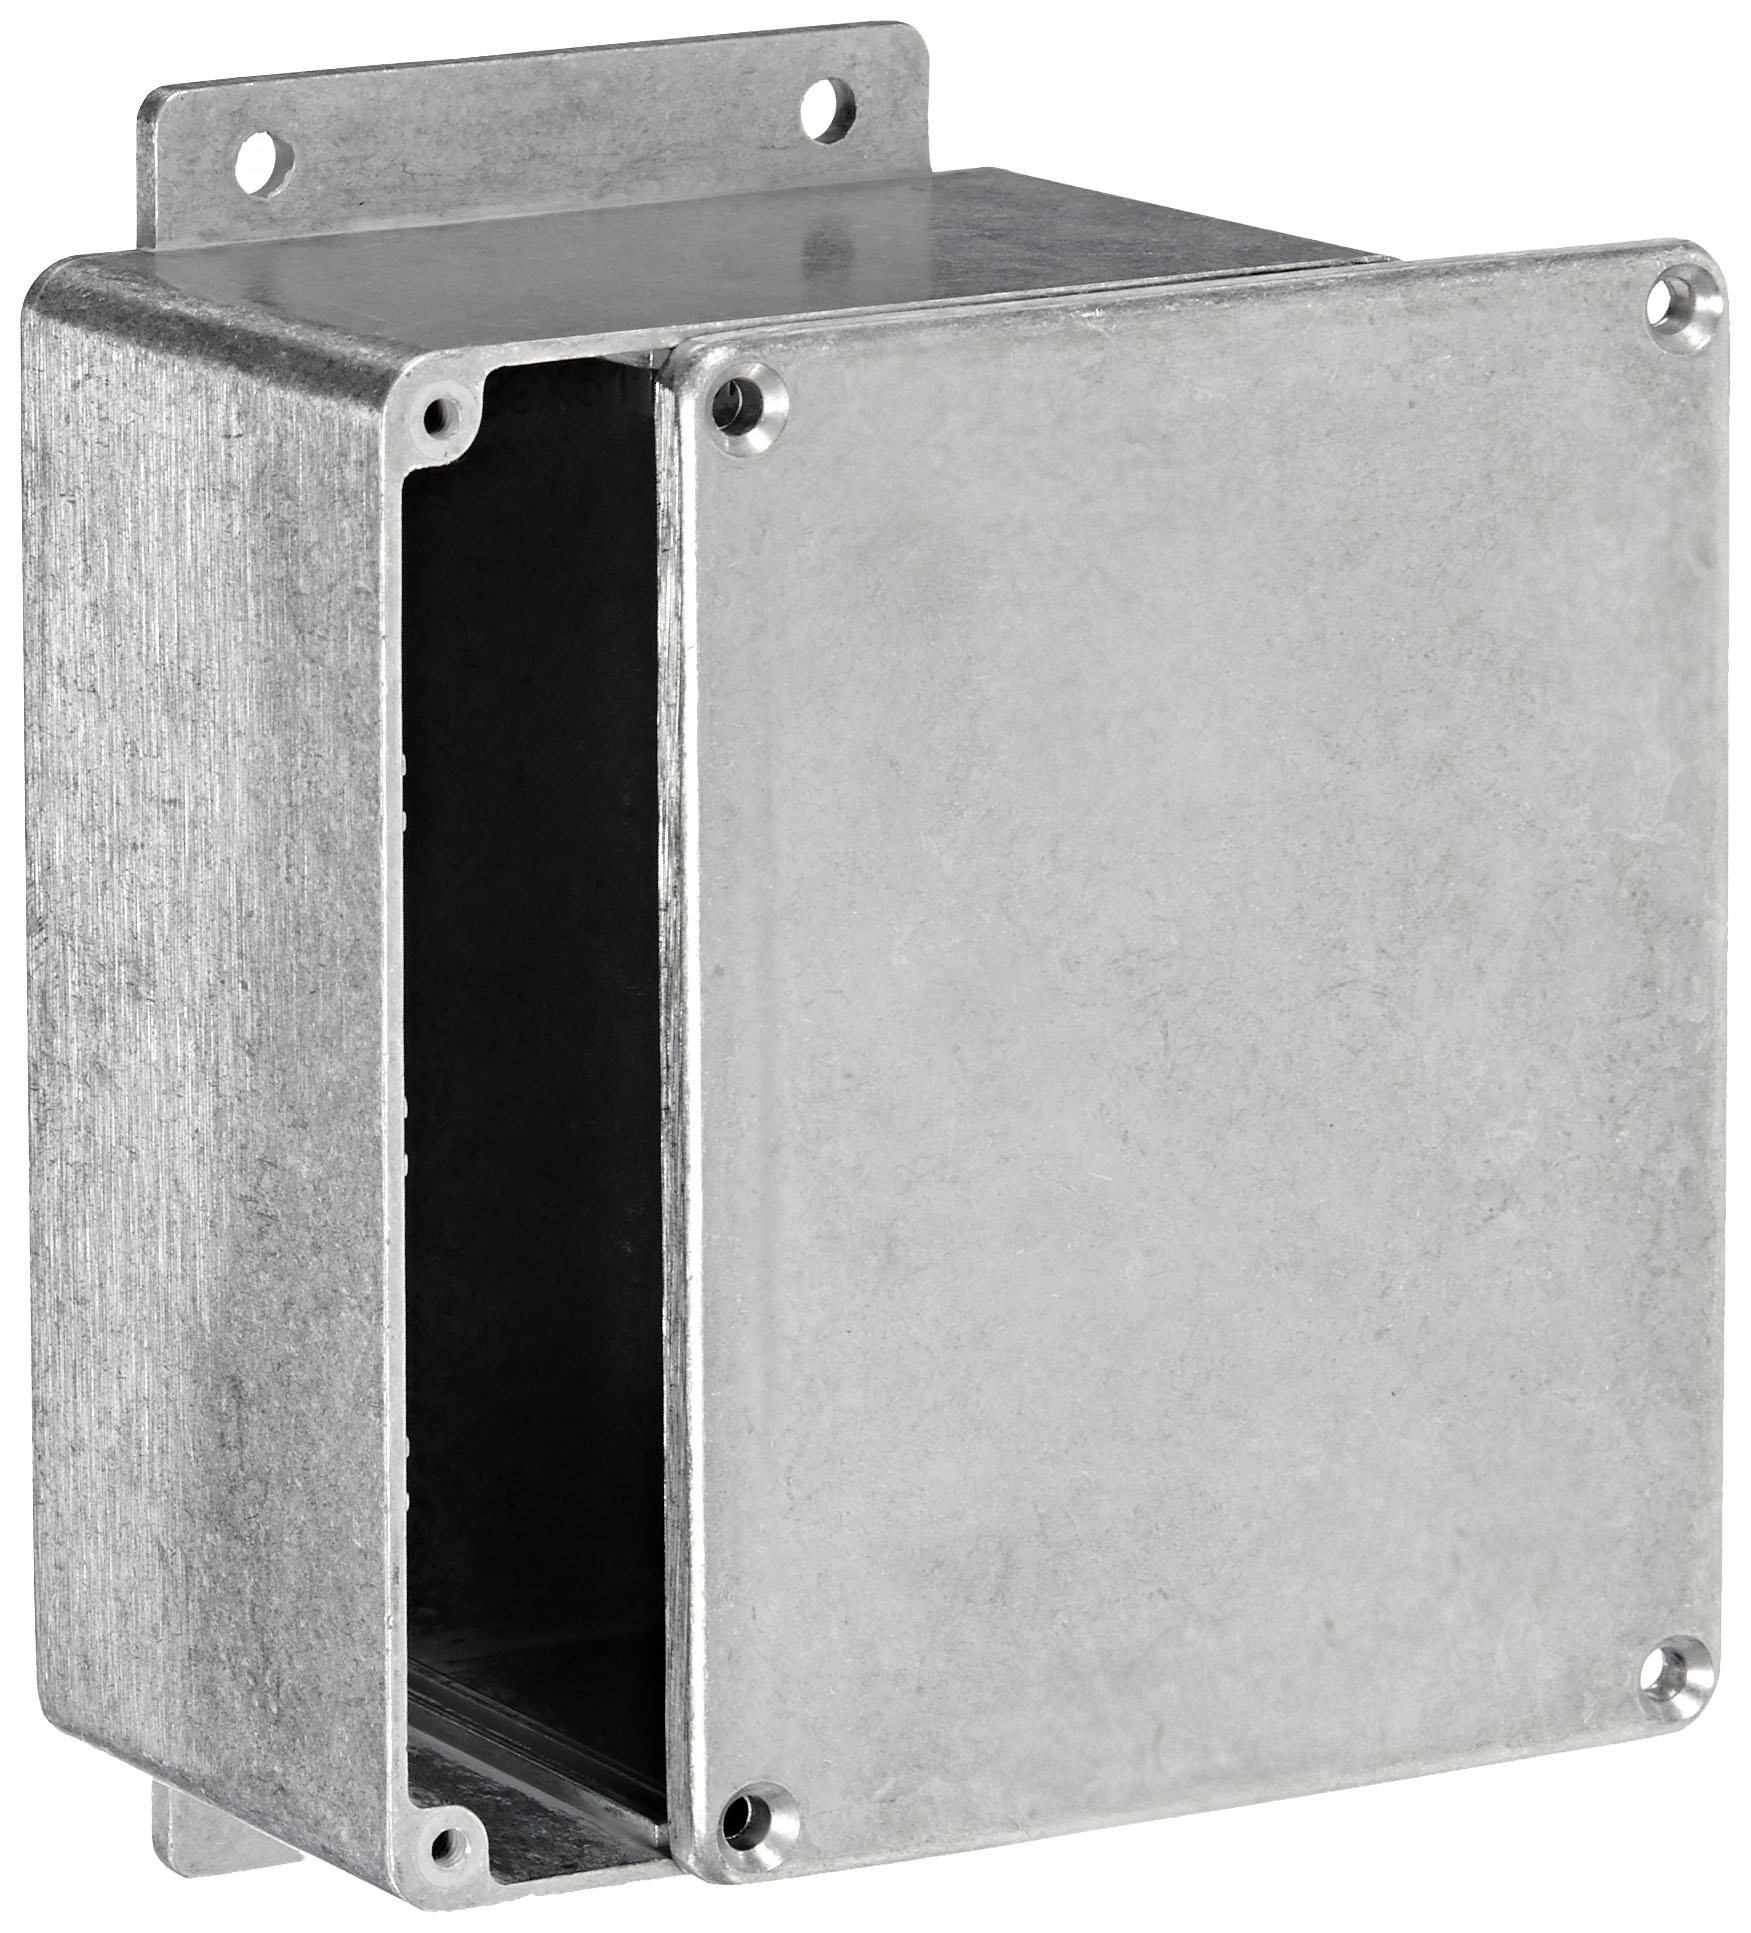 BUD Industries CN-6705 Die Cast Aluminum Enclosure with Mounting Bracket, 4-17/32'' Length x 3-9/16'' Width x 2-7/32'' Height, Natural Finish